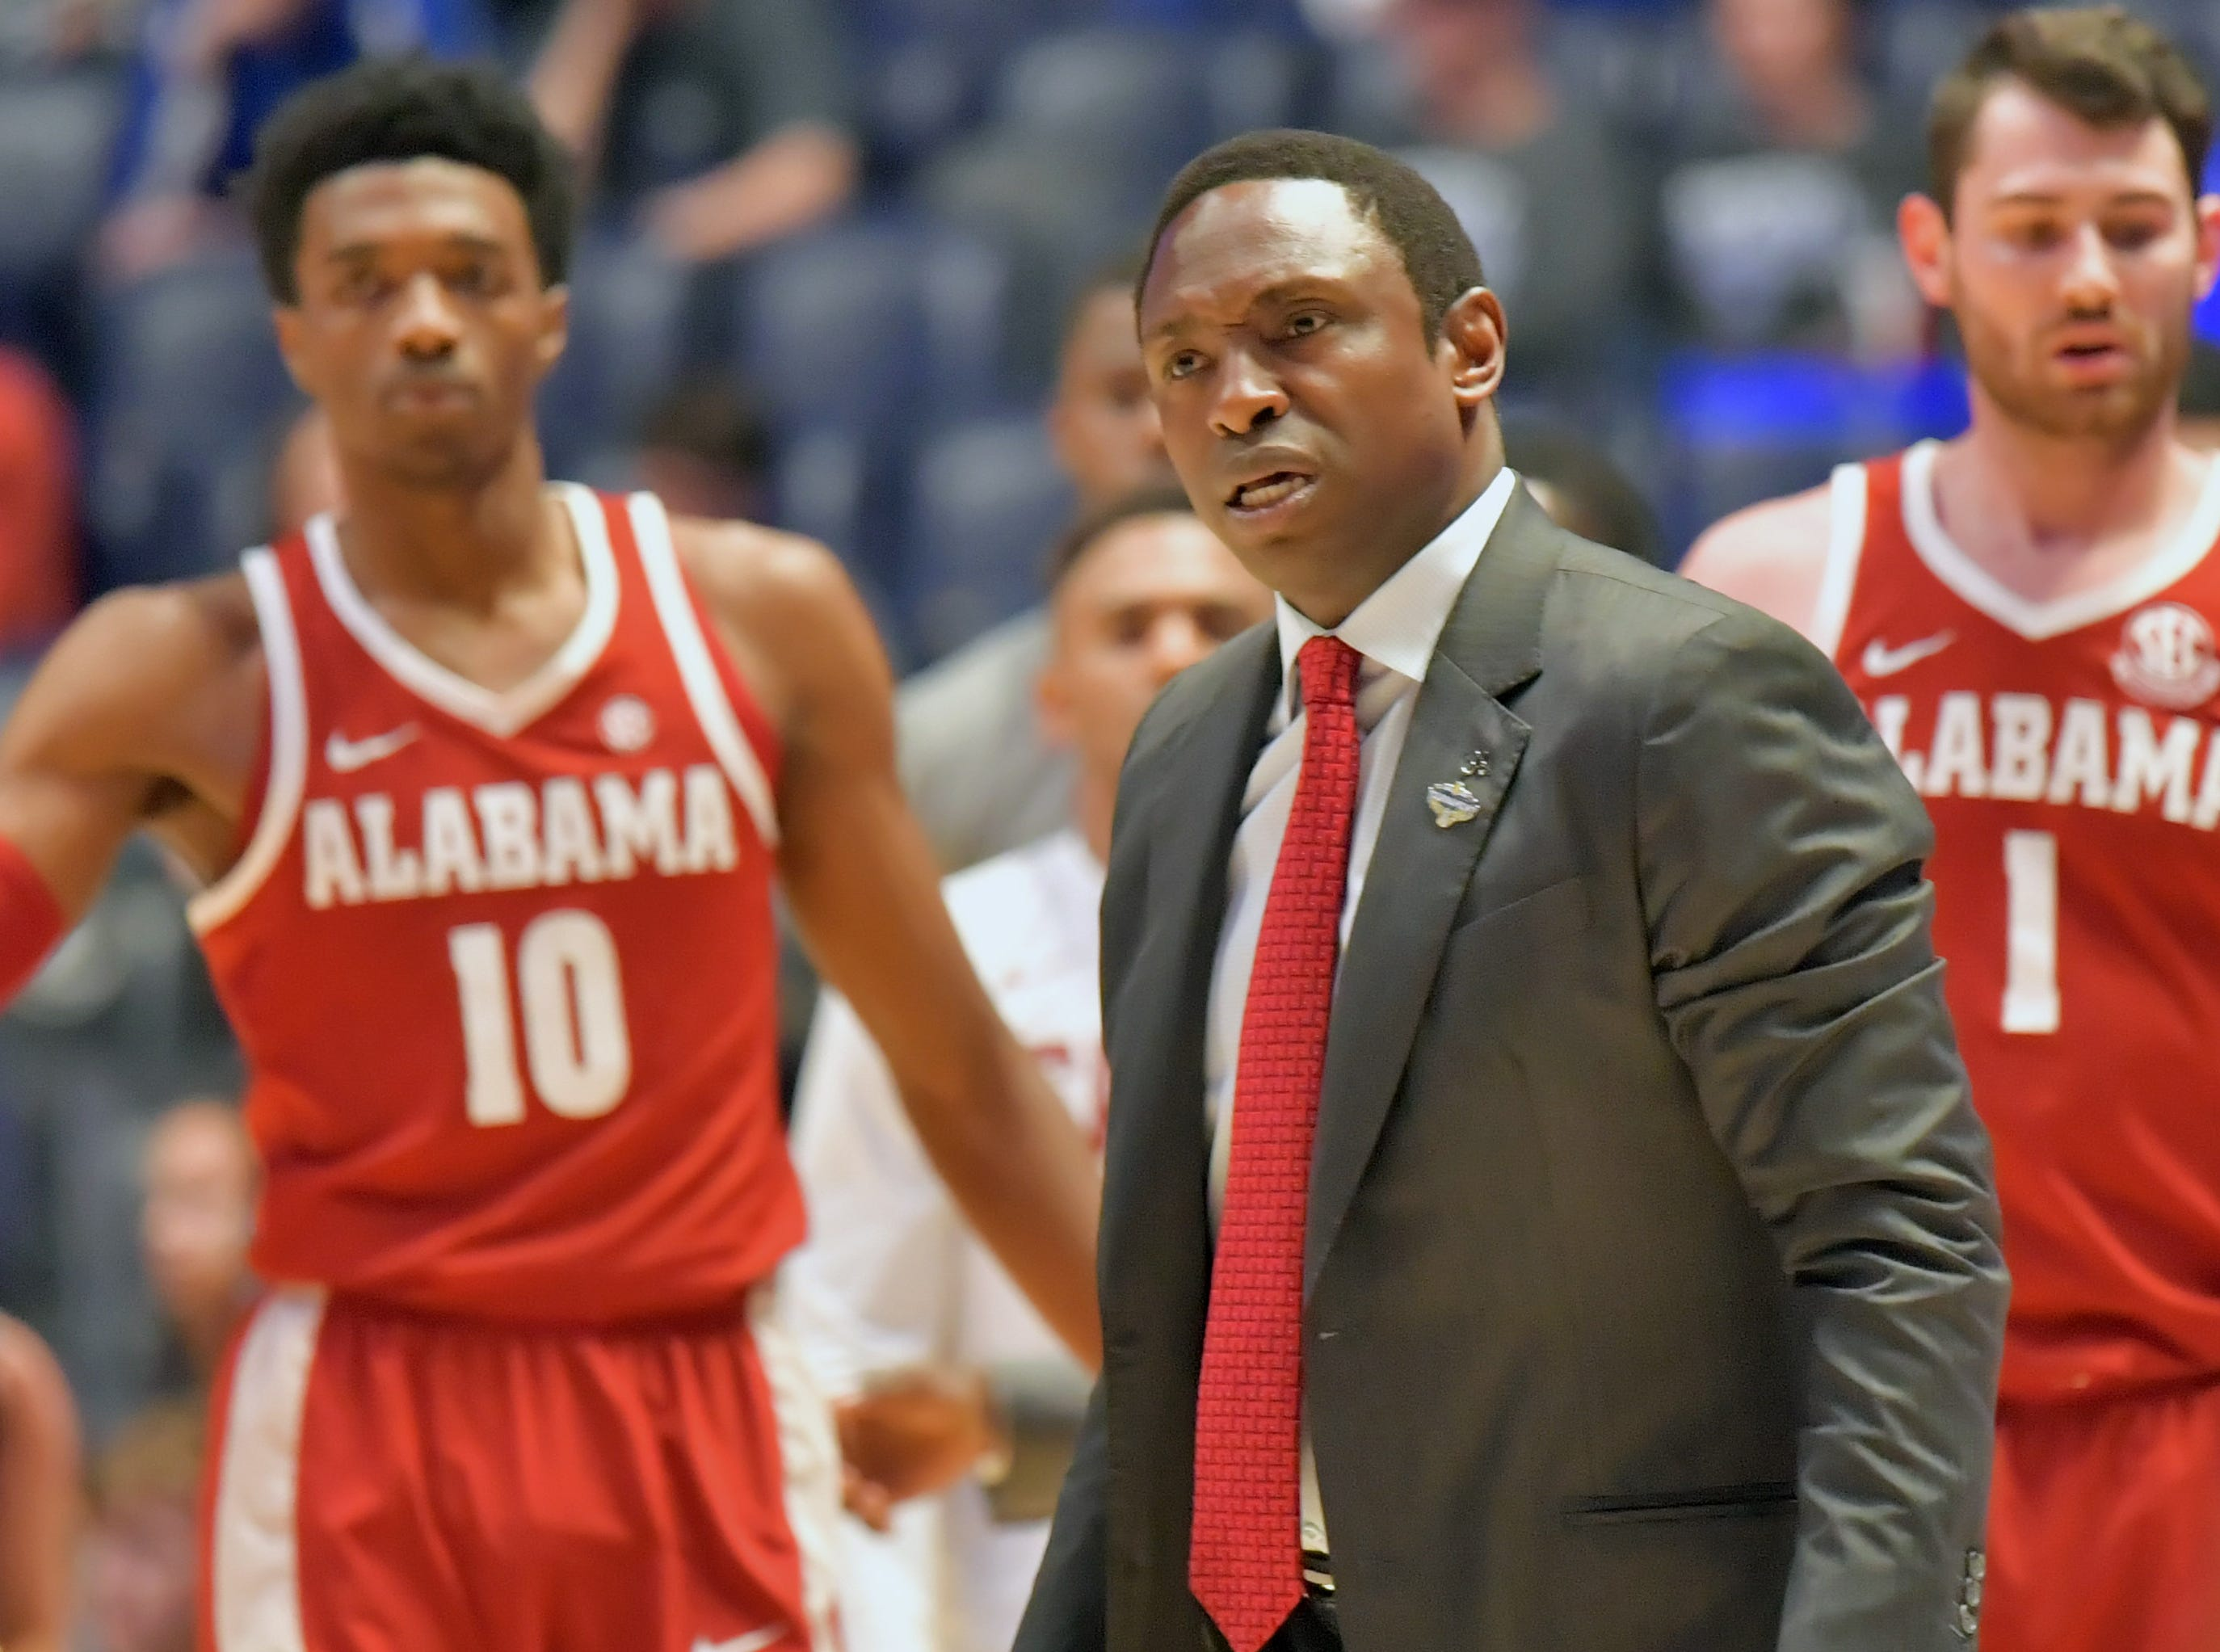 Mar 14, 2019; Nashville, TN, USA; Alabama Crimson Tide head coach Avery Johnson reacts in the first half against the Mississippi Rebels in the SEC conference tournament at Bridgestone Arena. Mandatory Credit: Jim Brown-USA TODAY Sports